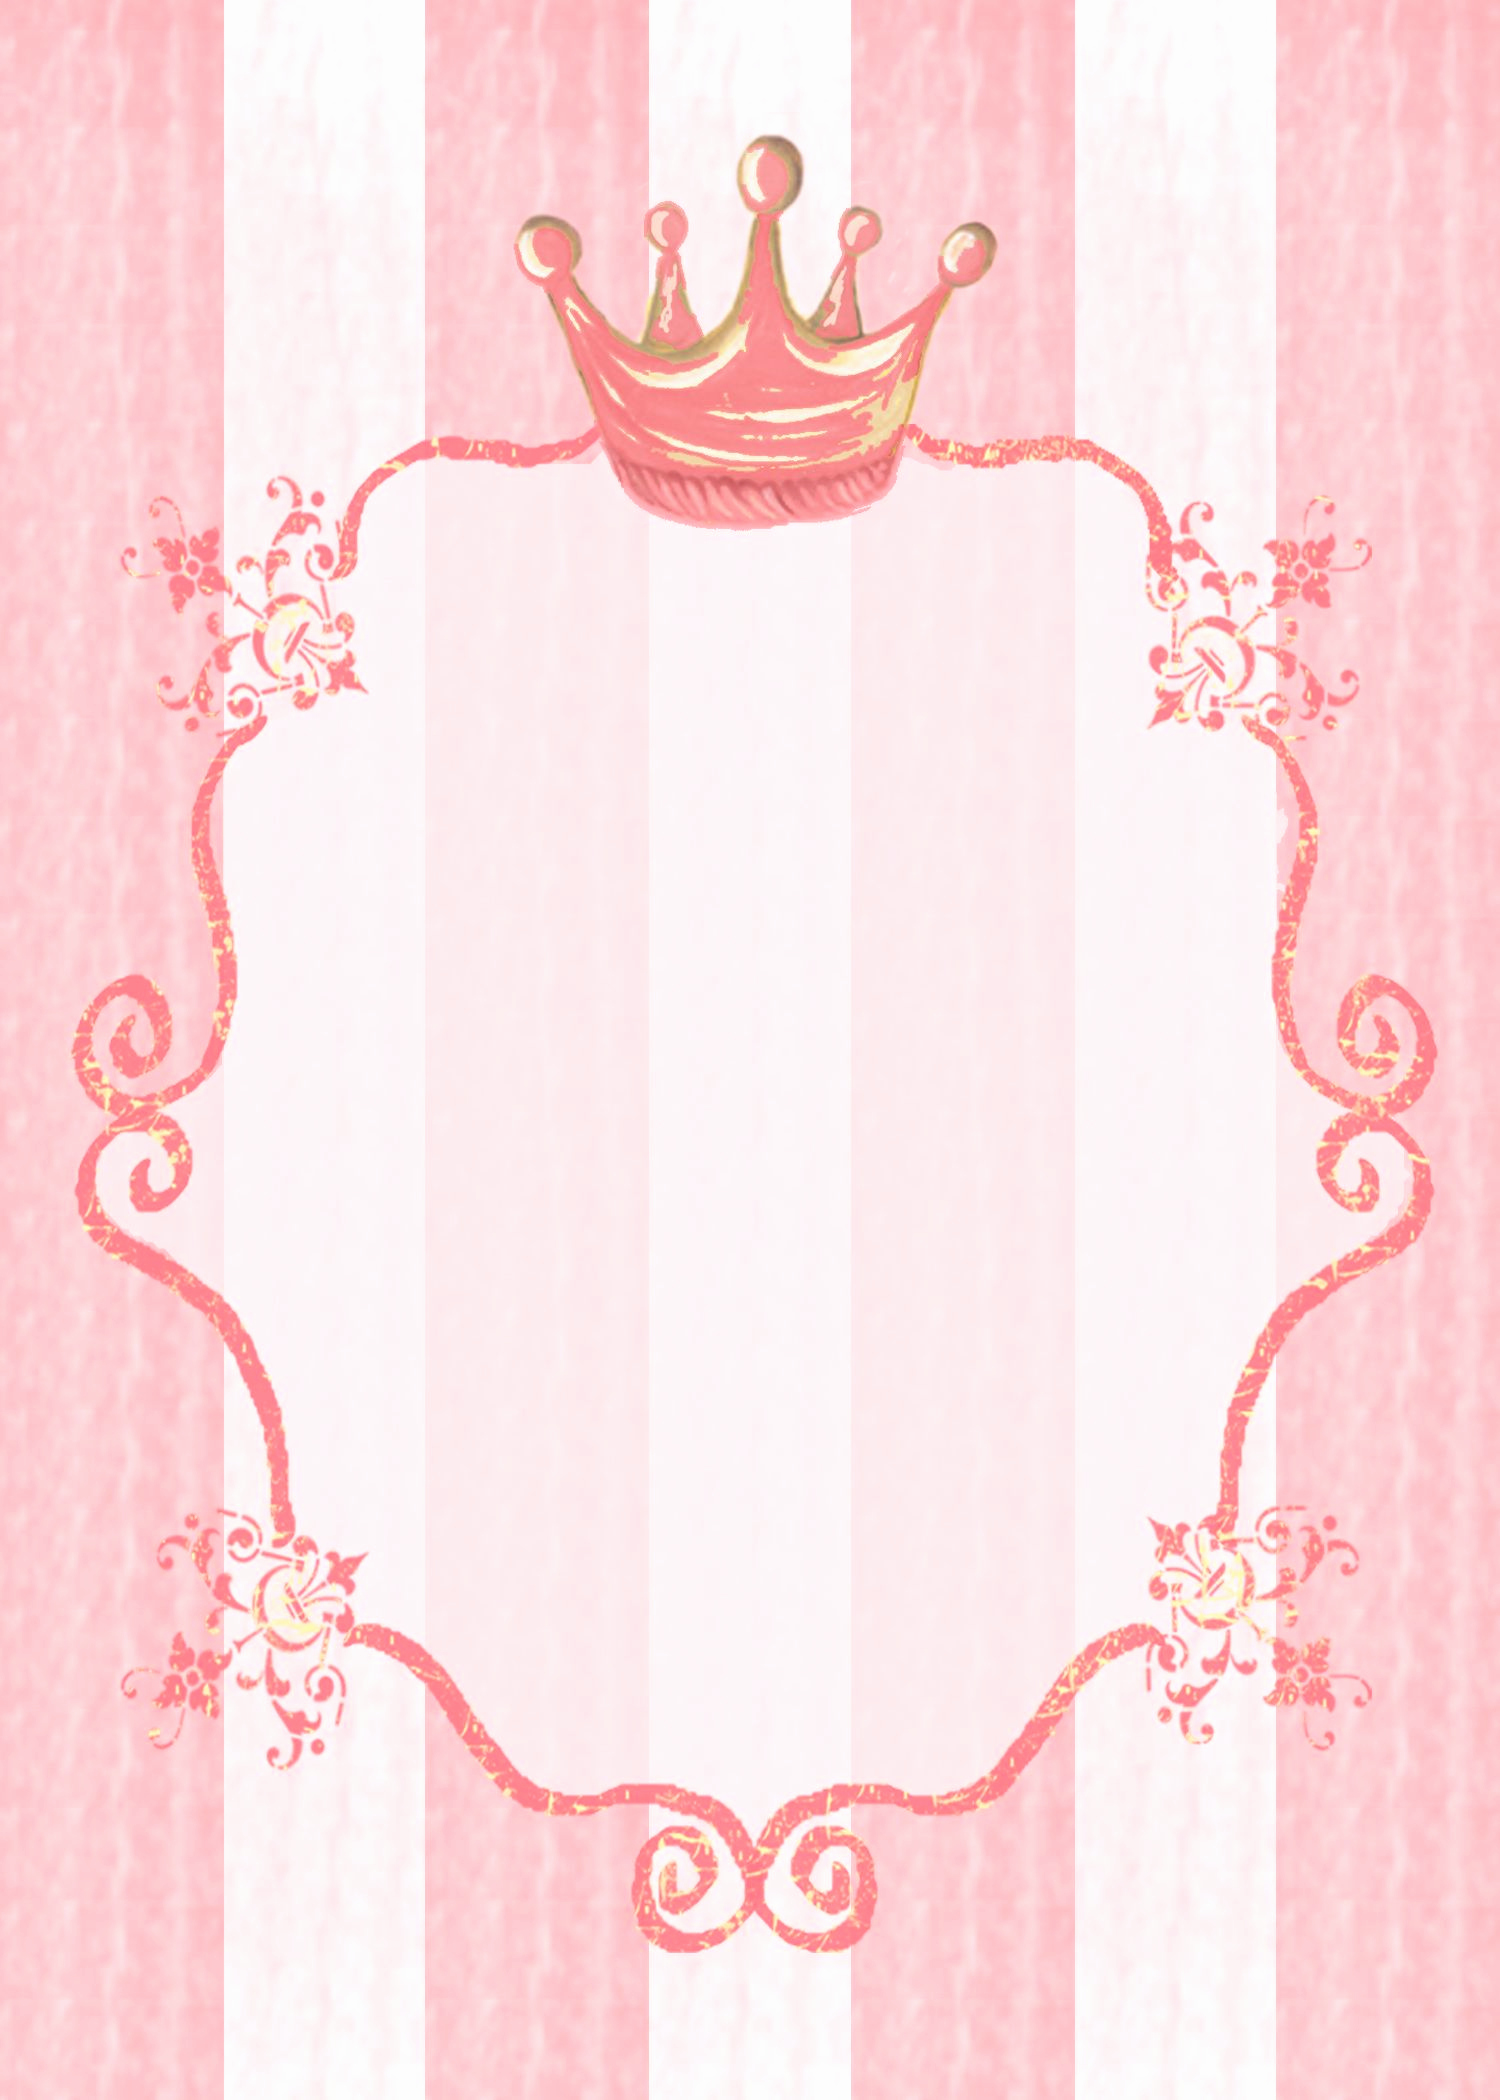 Free Princess Invitation Template Elegant Princess Party Invitation Background Kids Stationery